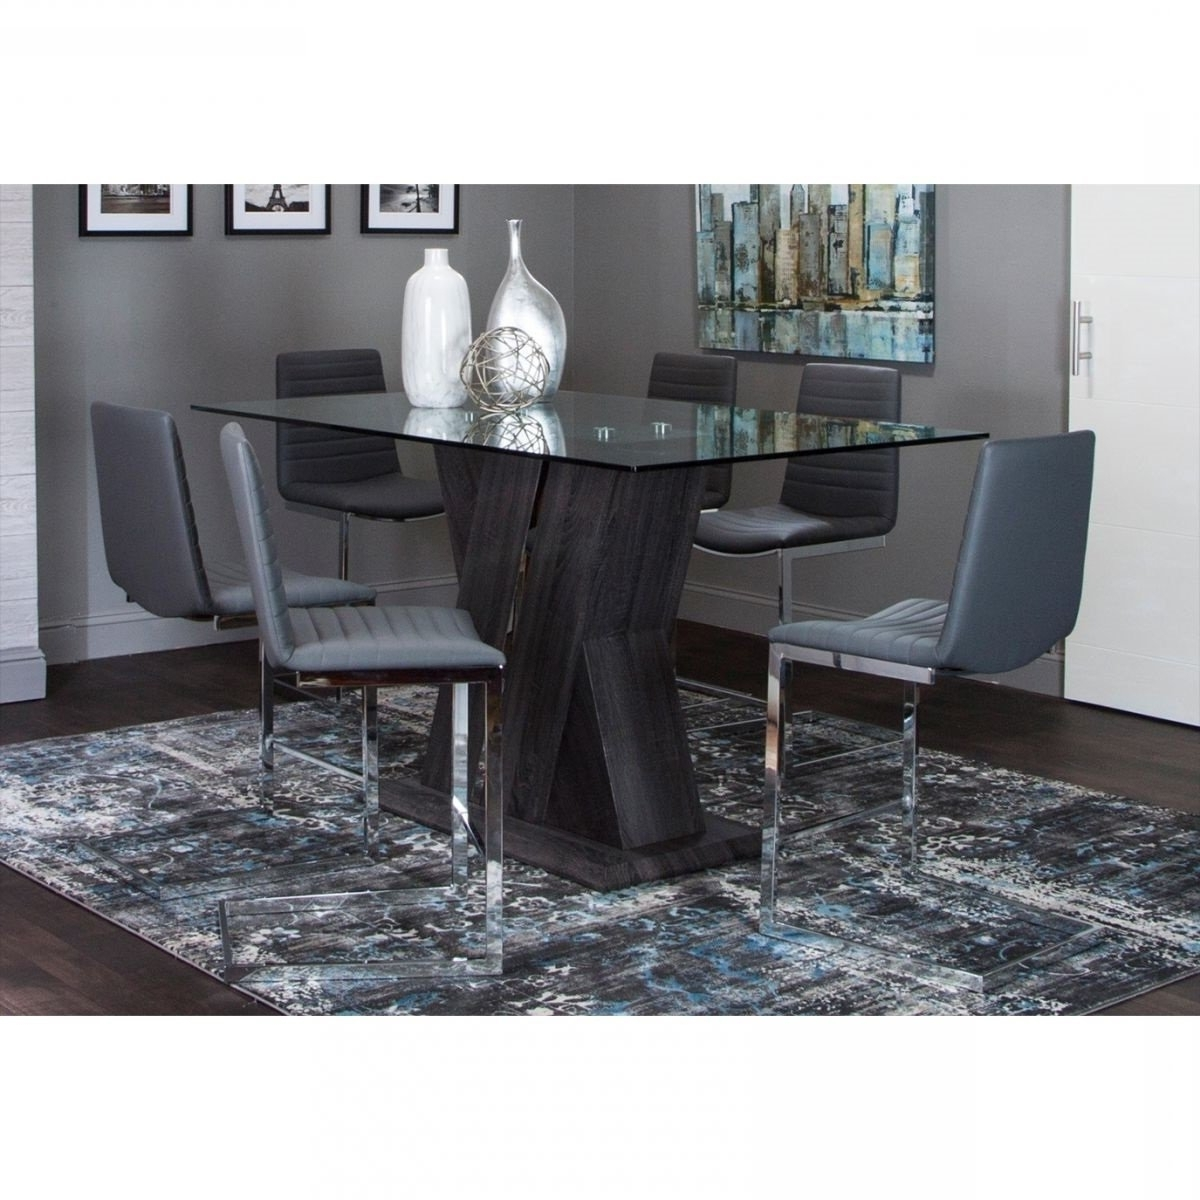 Sprint 5 Pc Counter Height Dining (View 15 of 25)